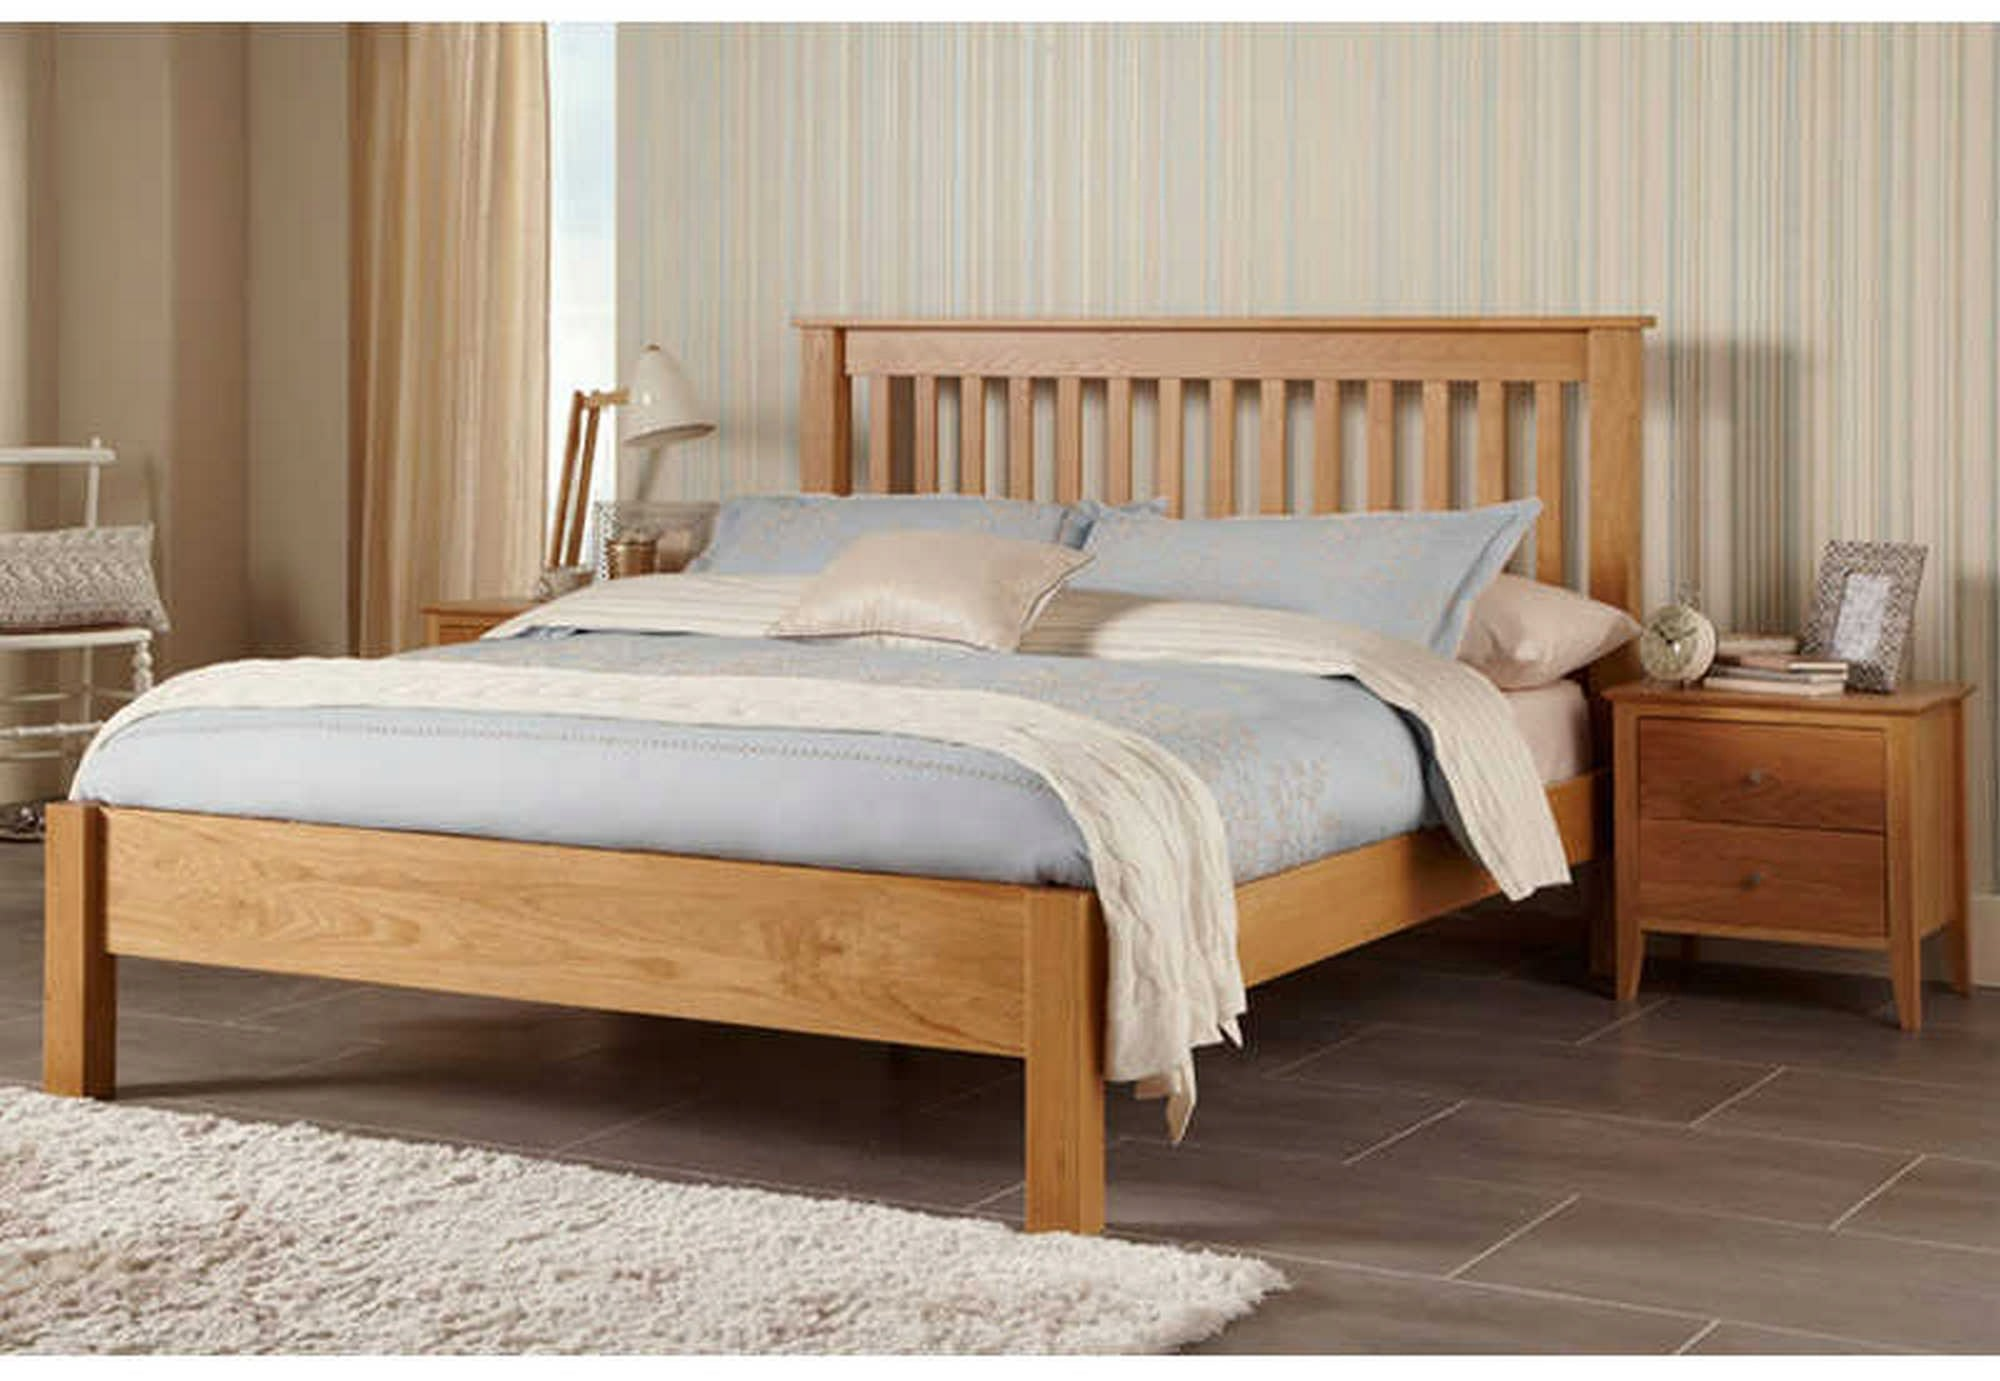 Serene Furnishings Serene Lincoln Oak 5ft 150cm X 200cm Kingsize Wooden Bed Beds From Beds 4 Less Uk